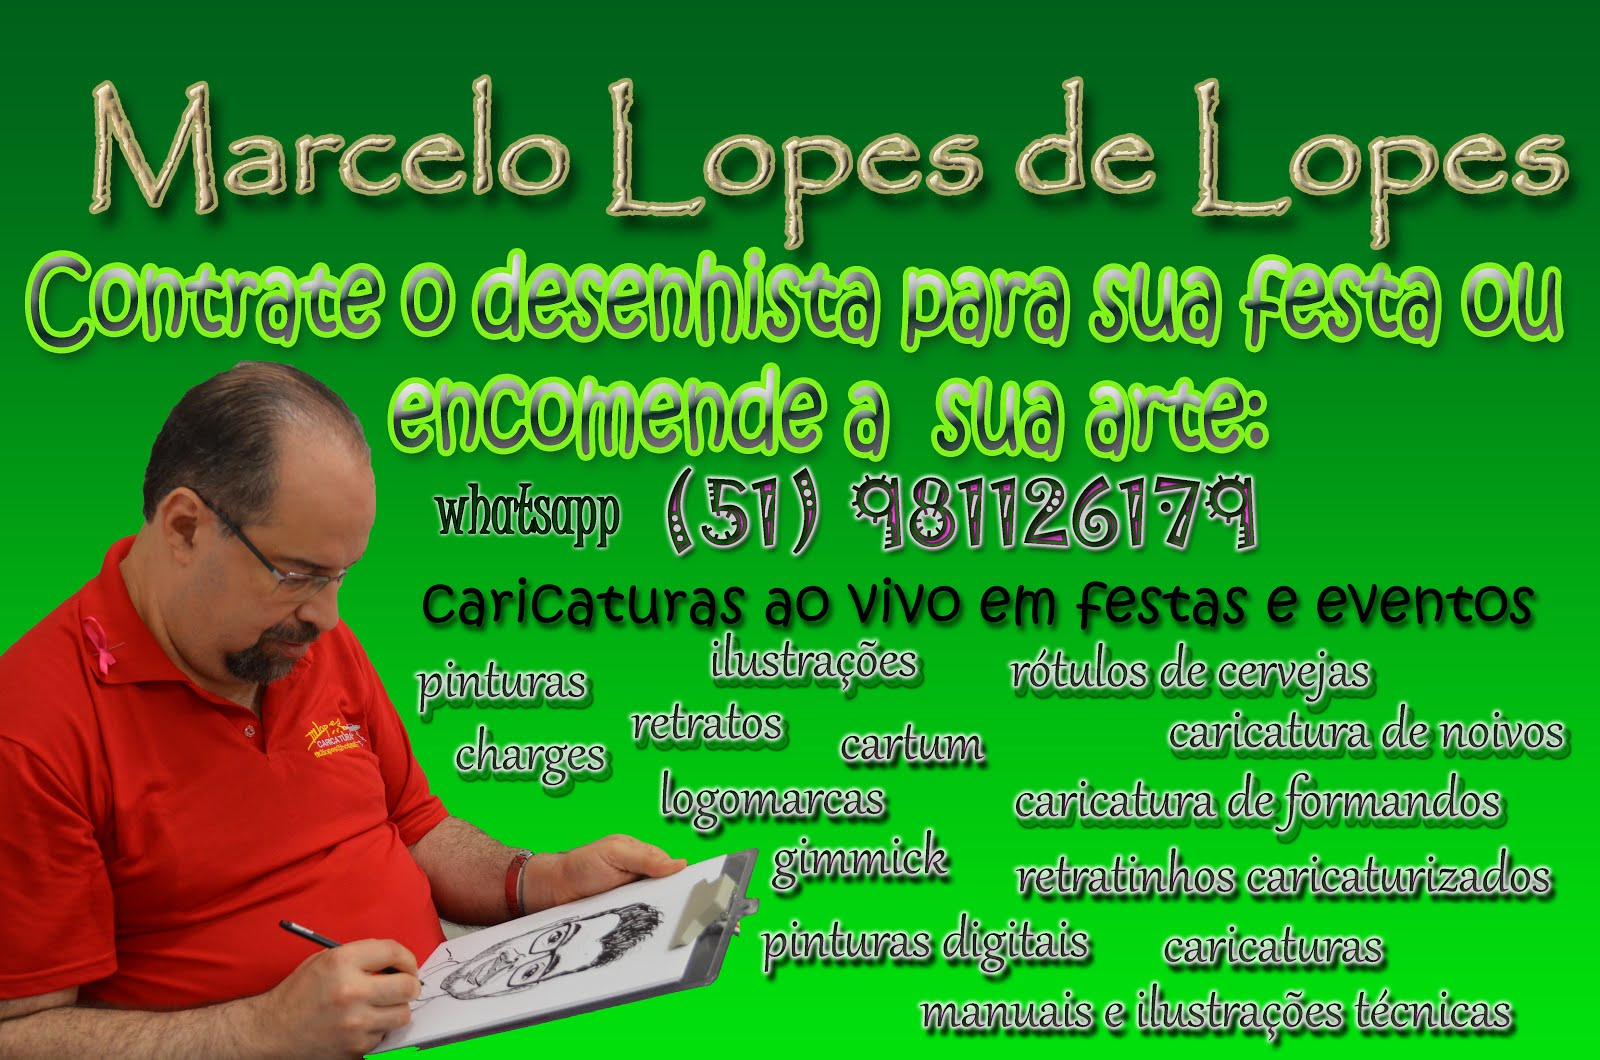 Caricaturas e desenhos Marcelo Lopes de Lopes, Porto Alegre